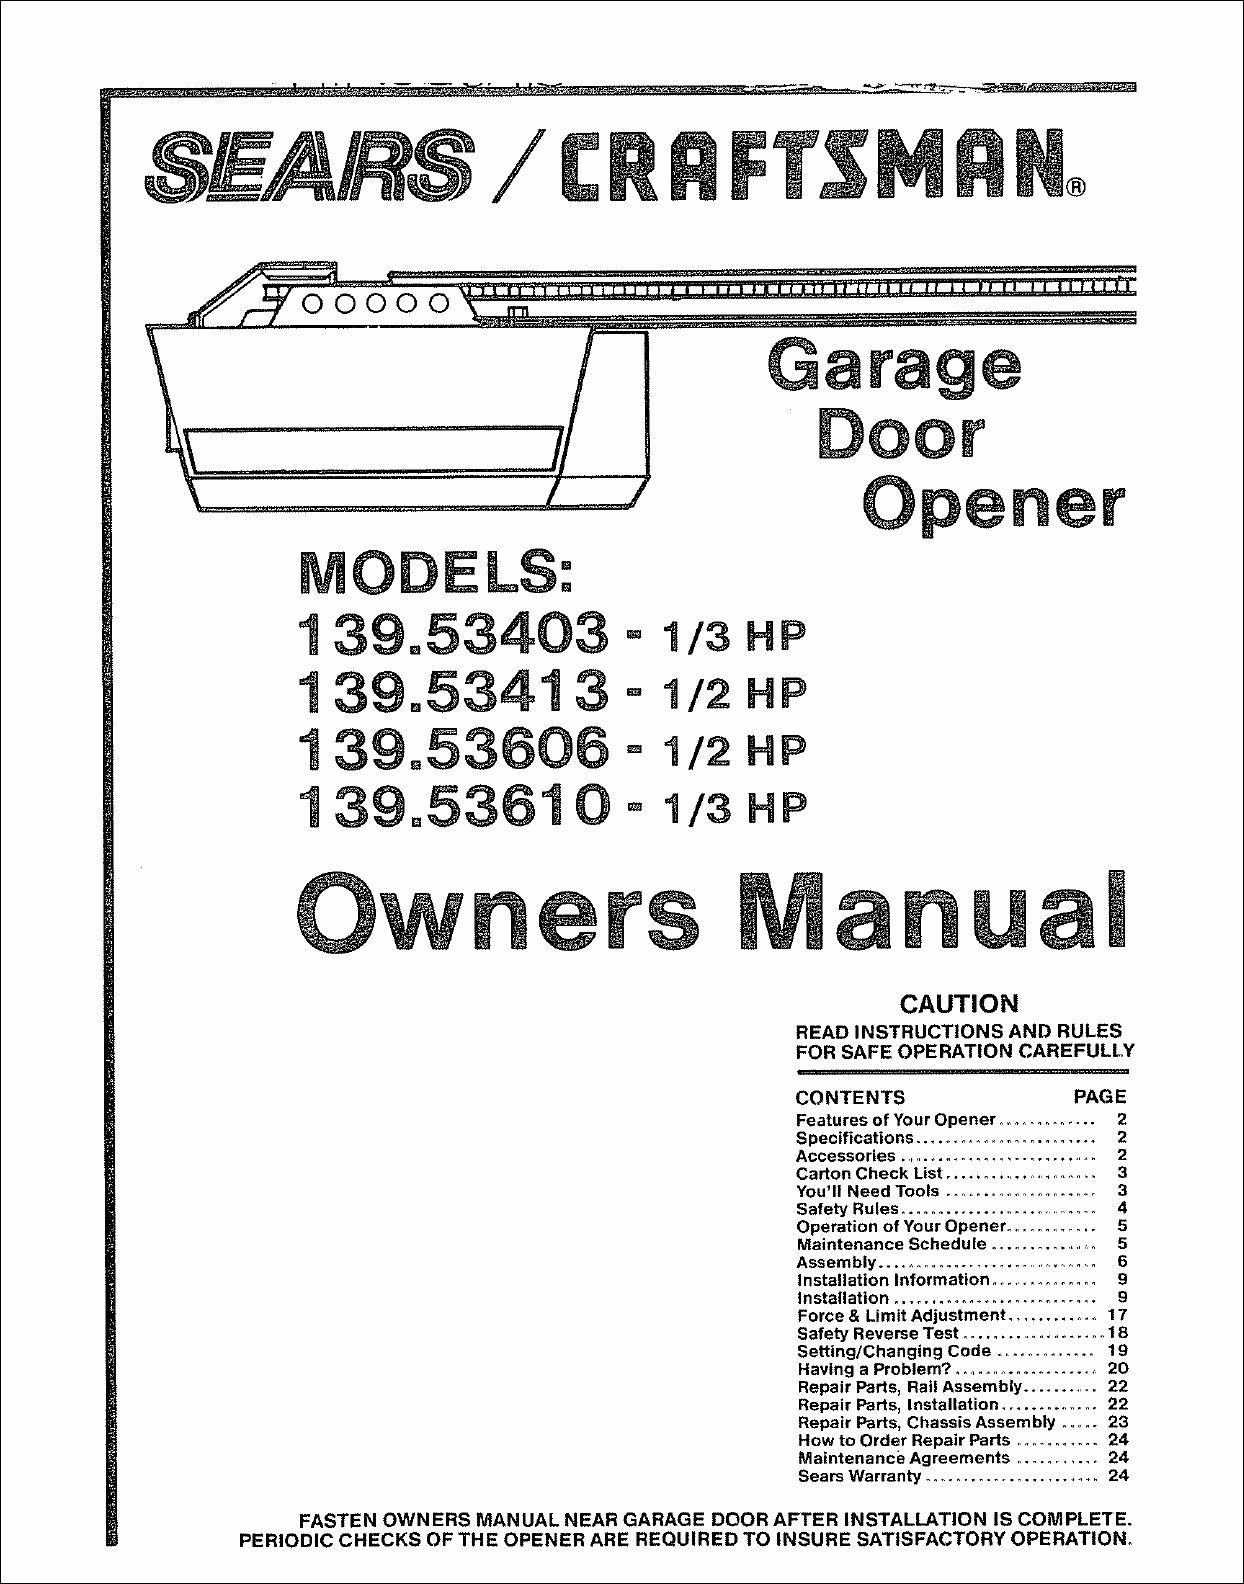 Unique Wiring Diagram Garage Door Motor #diagram #diagramsample #diagramt…  | Craftsman garage door, Craftsman garage door opener, Garage door opener  troubleshootingPinterest